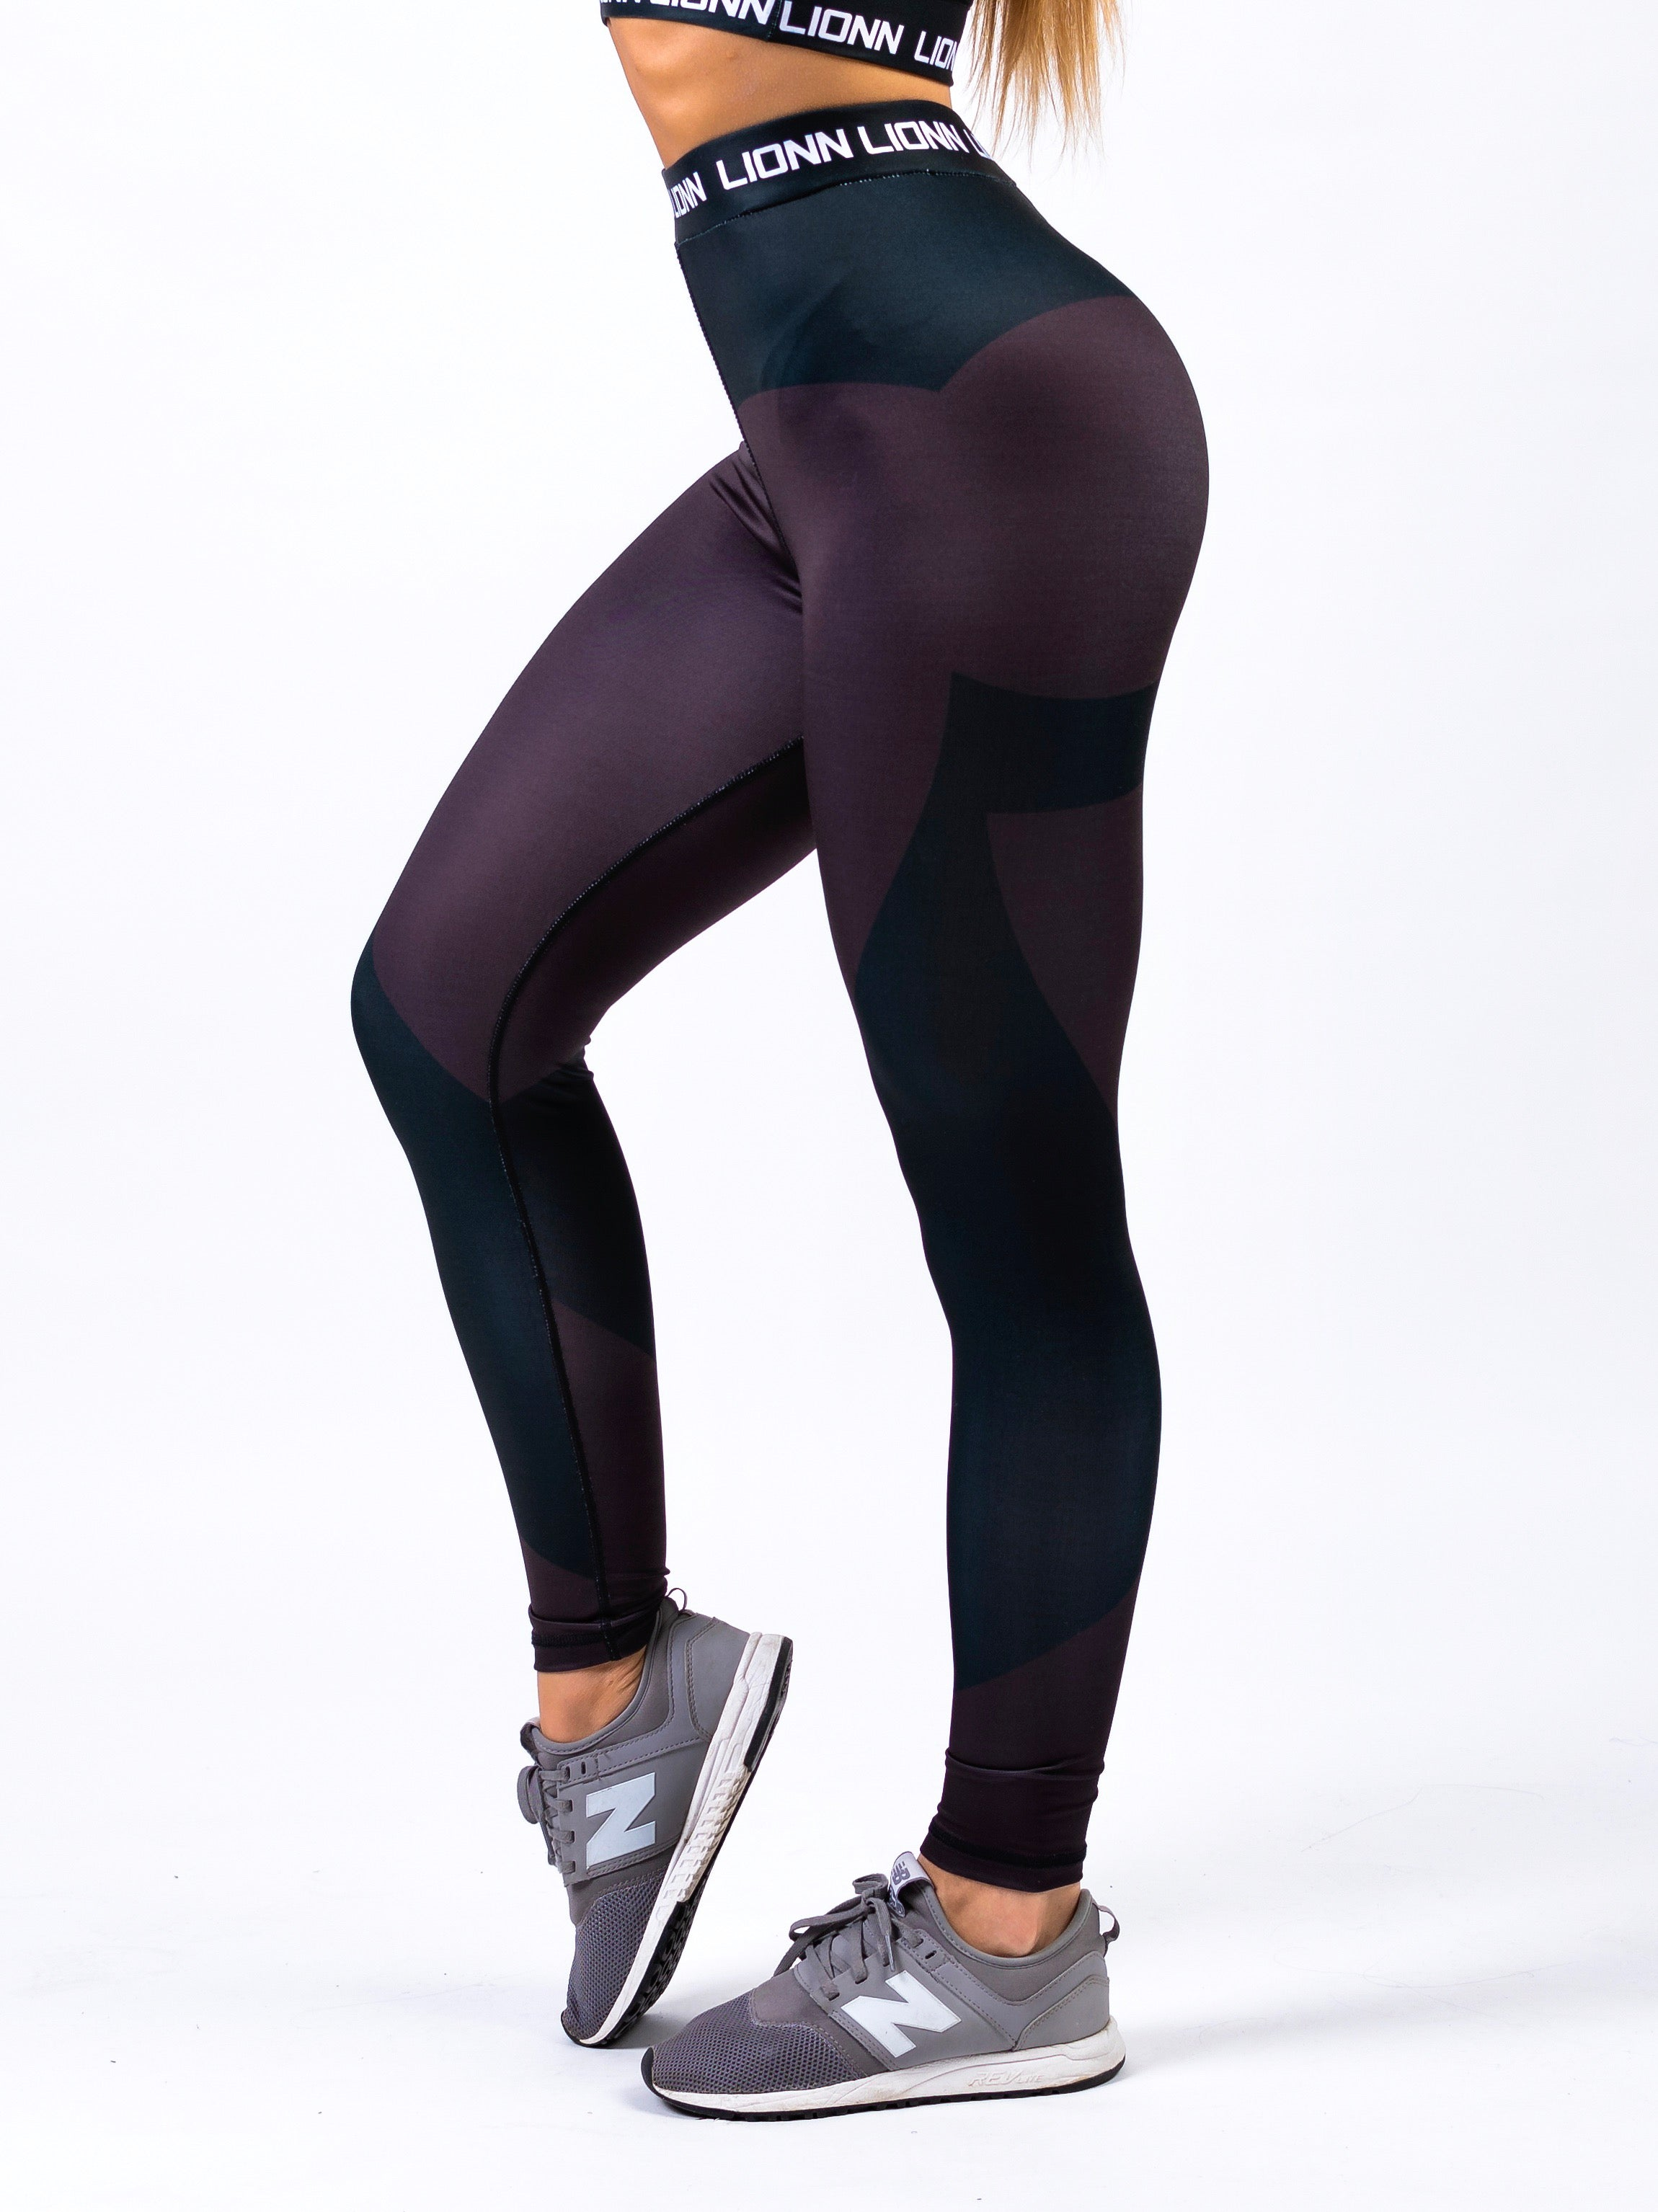 Lionn Contour Leggings Black